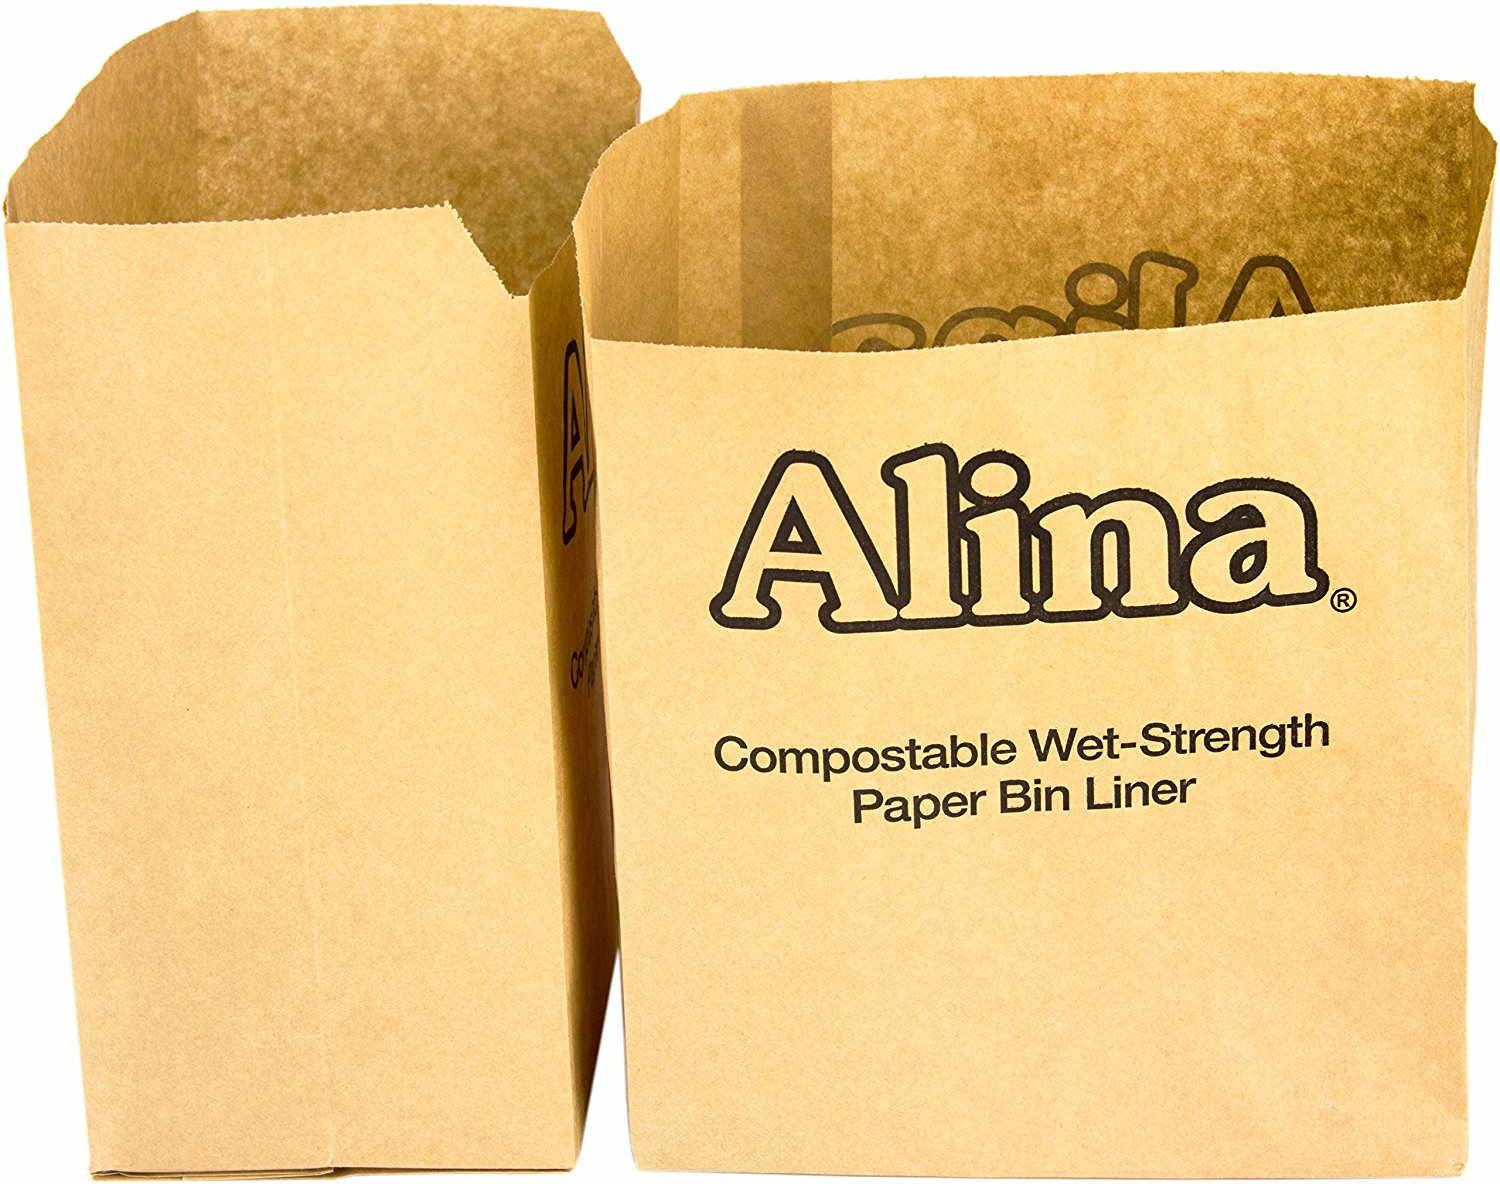 Wet-Strength Paper - Primary Packaging